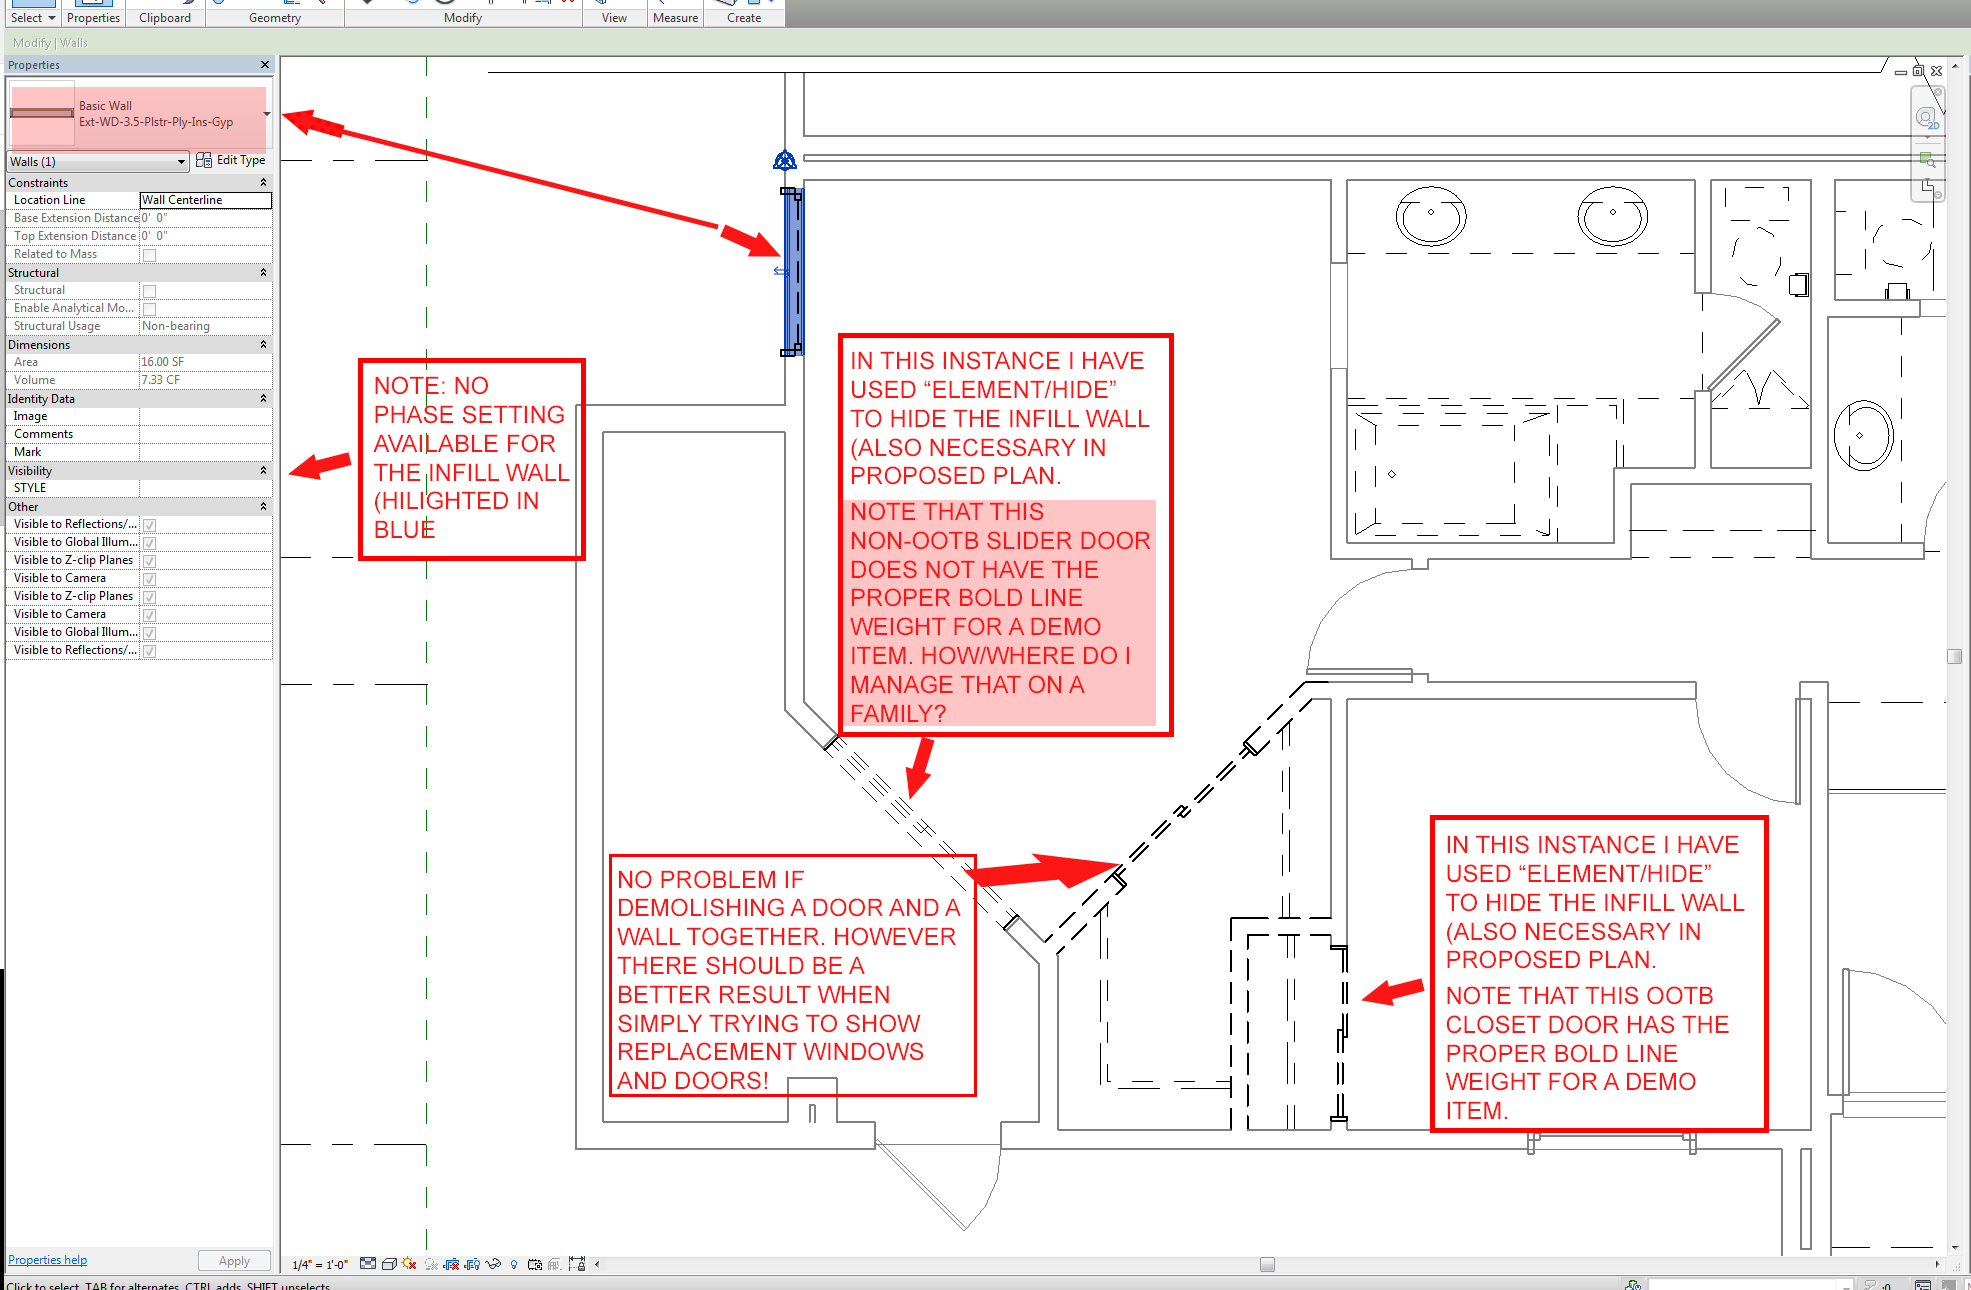 Solved: Cut/Paste windows and doors from existing view to ...